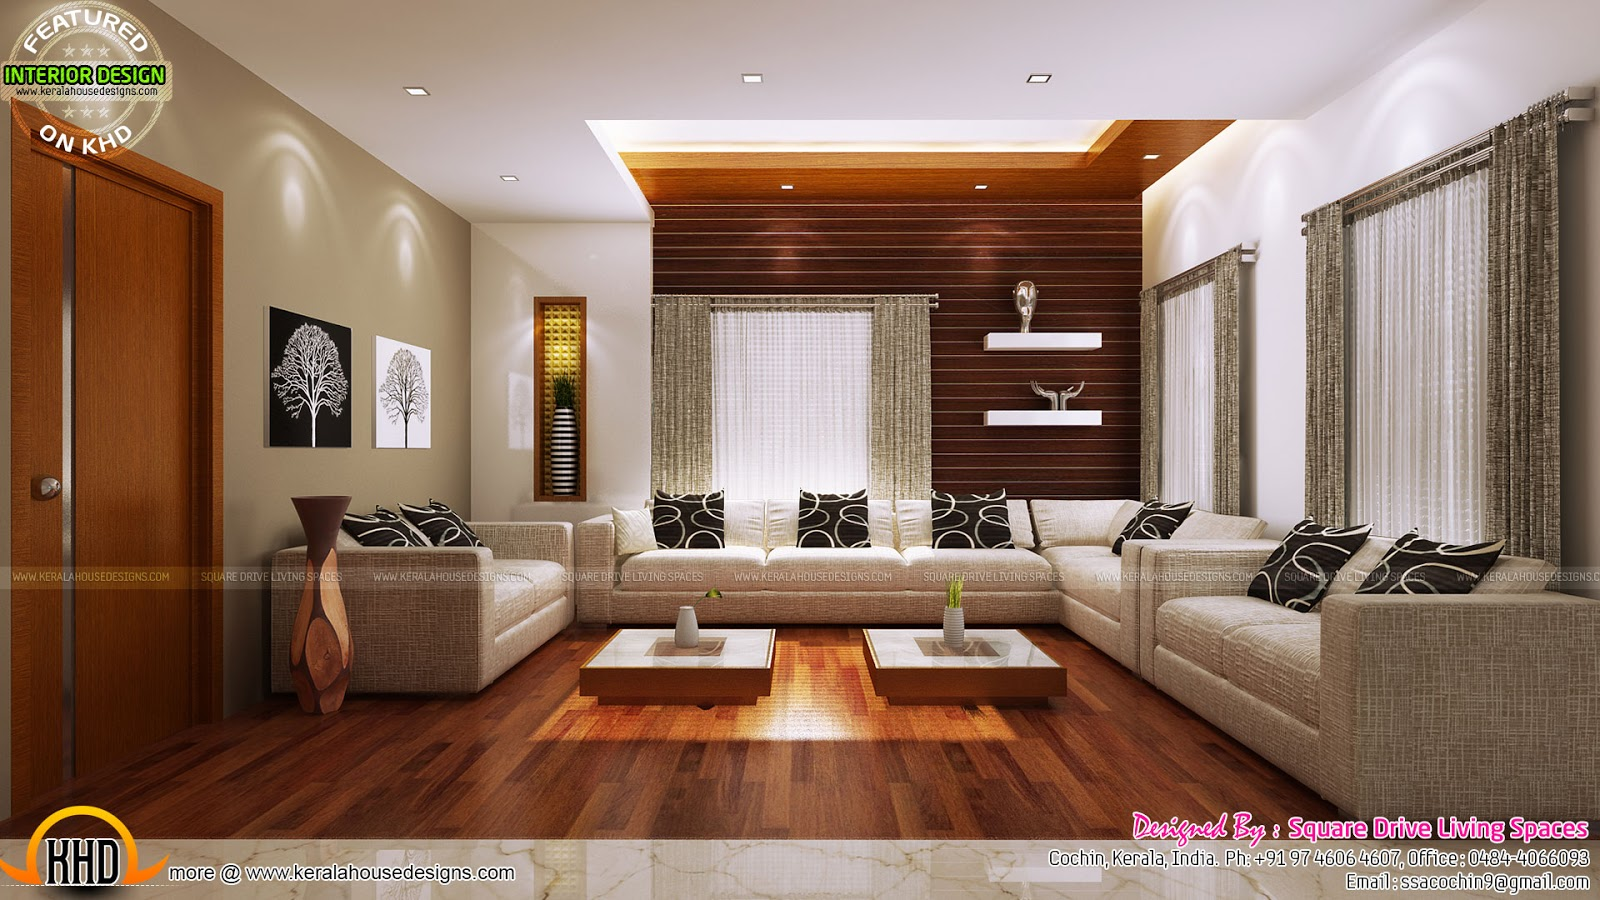 Excellent kerala interior design kerala home design and - House interior design pictures living room ...